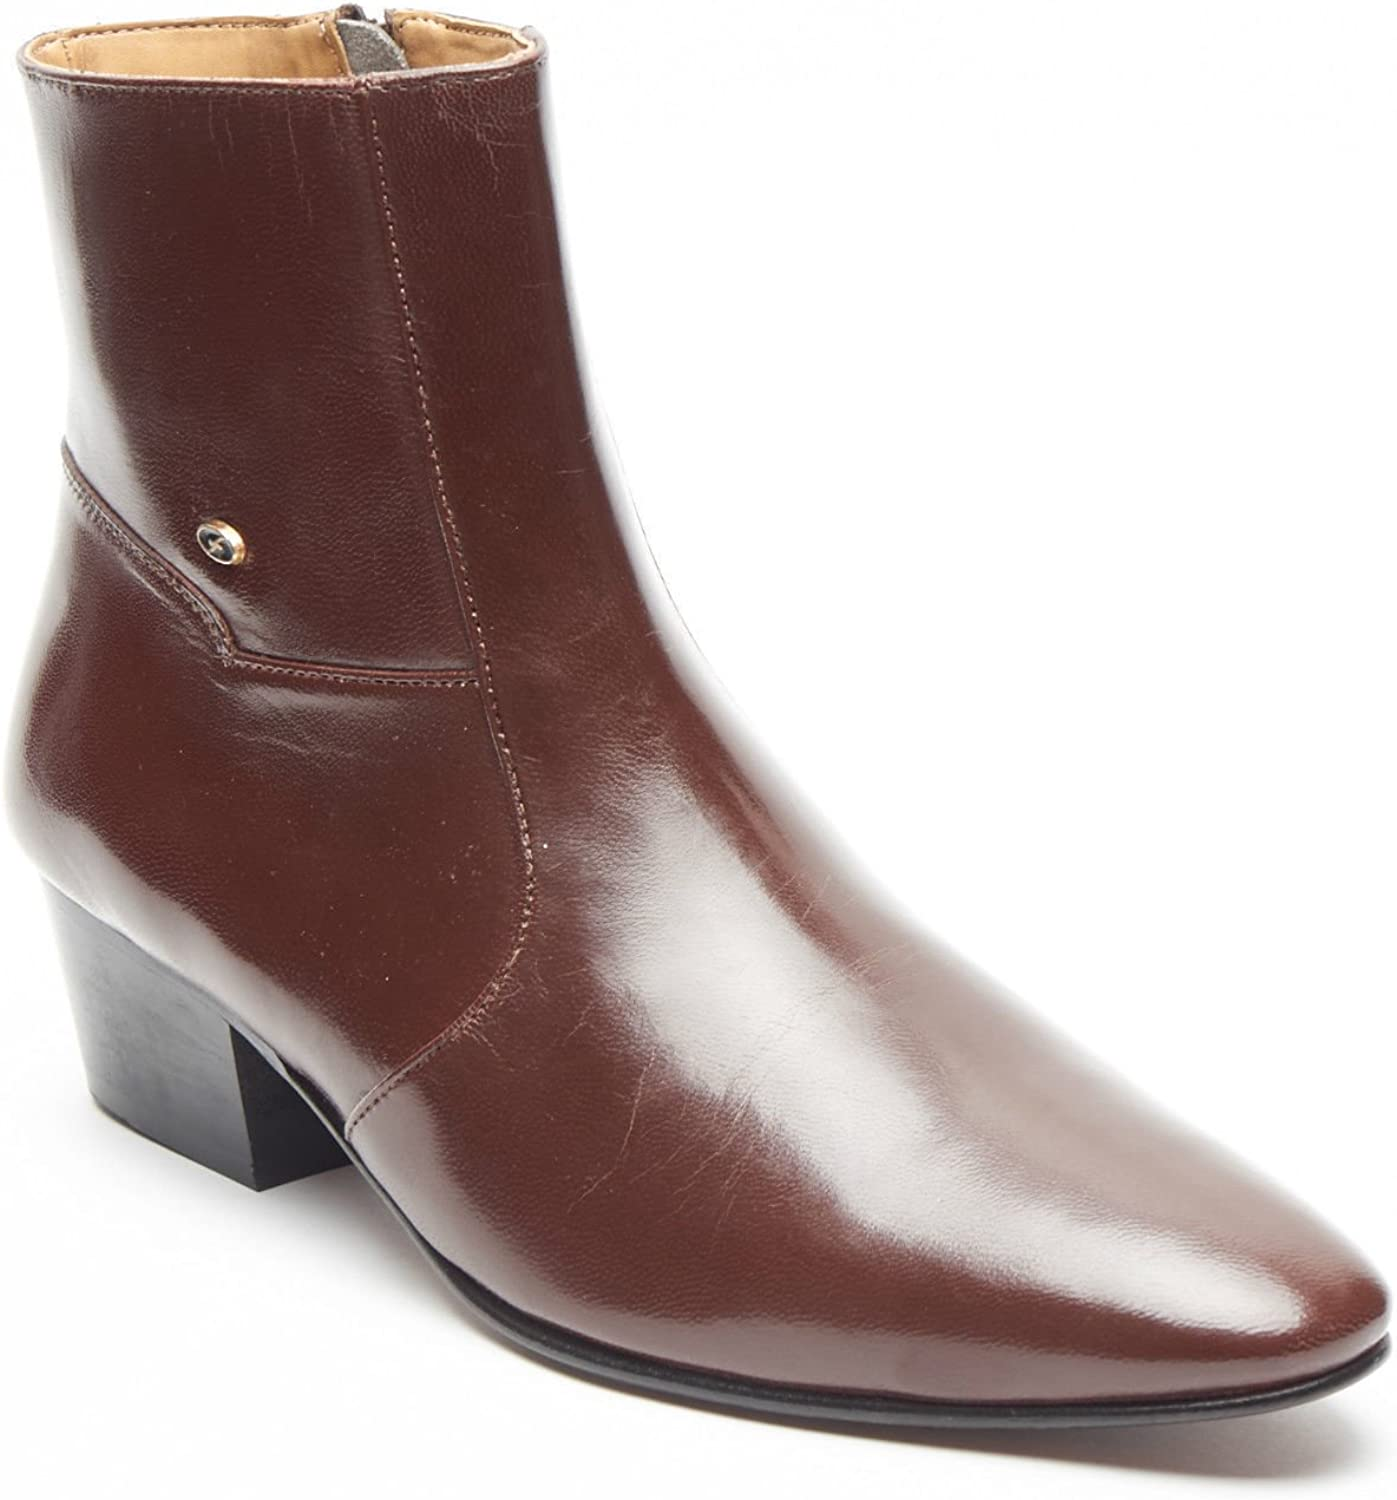 Lucini Ankle Boots Heel Men Leather Brown Wedding Office